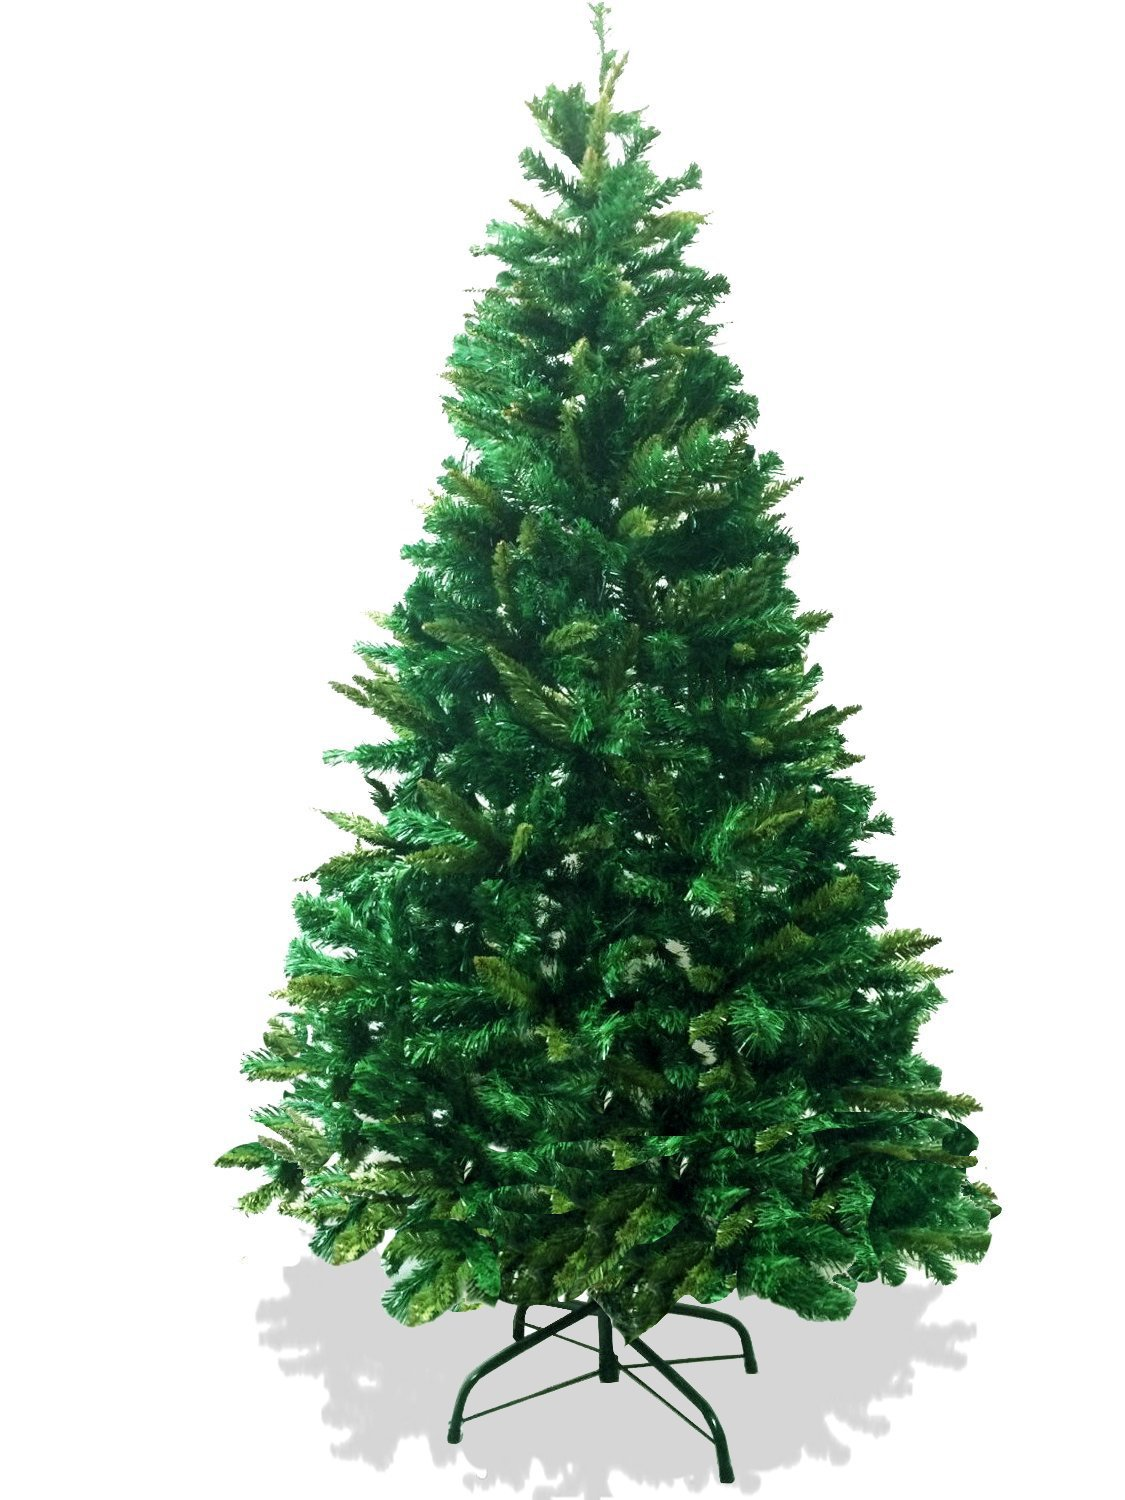 Artificial Christmas Tree Branches.6 Foot Premium 800 Tips Full Plush Branches Canadian Pine Frasier Fir Green Artificial Christmas Tree Plush Full Metal Tree Stand